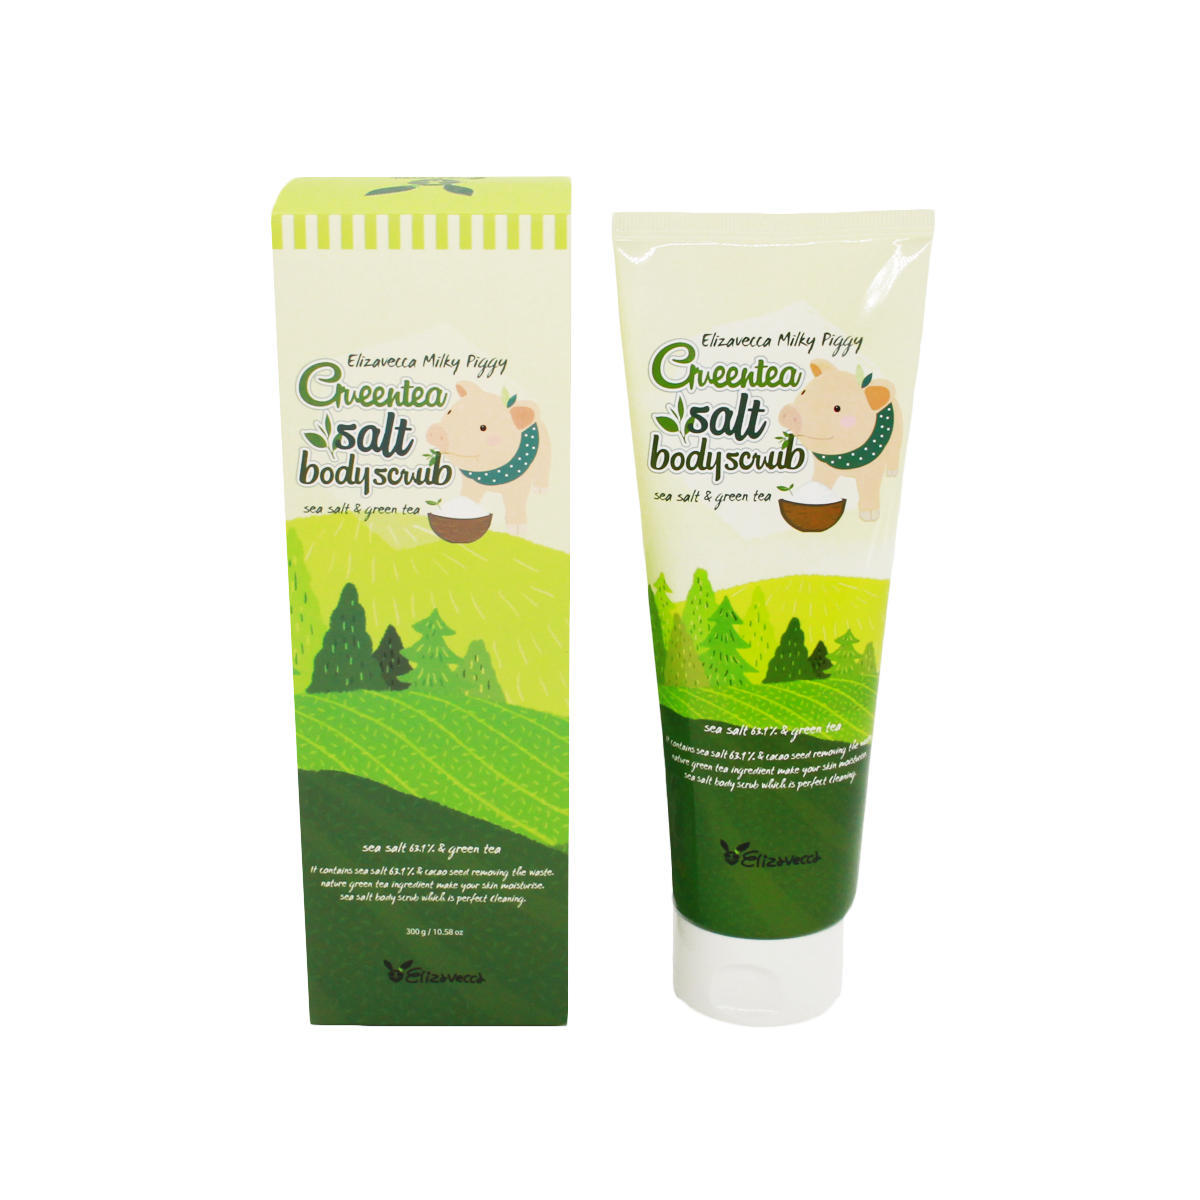 ELIZAVECCA Скраб для тела , ELIZAVECCA,  MIlky Piggy Green Tea Salt Body Scrub (tube), 300 мл import_files_6f_6f7656195abf11e980fb3408042974b1_6f76561a5abf11e980fb3408042974b1.jpg